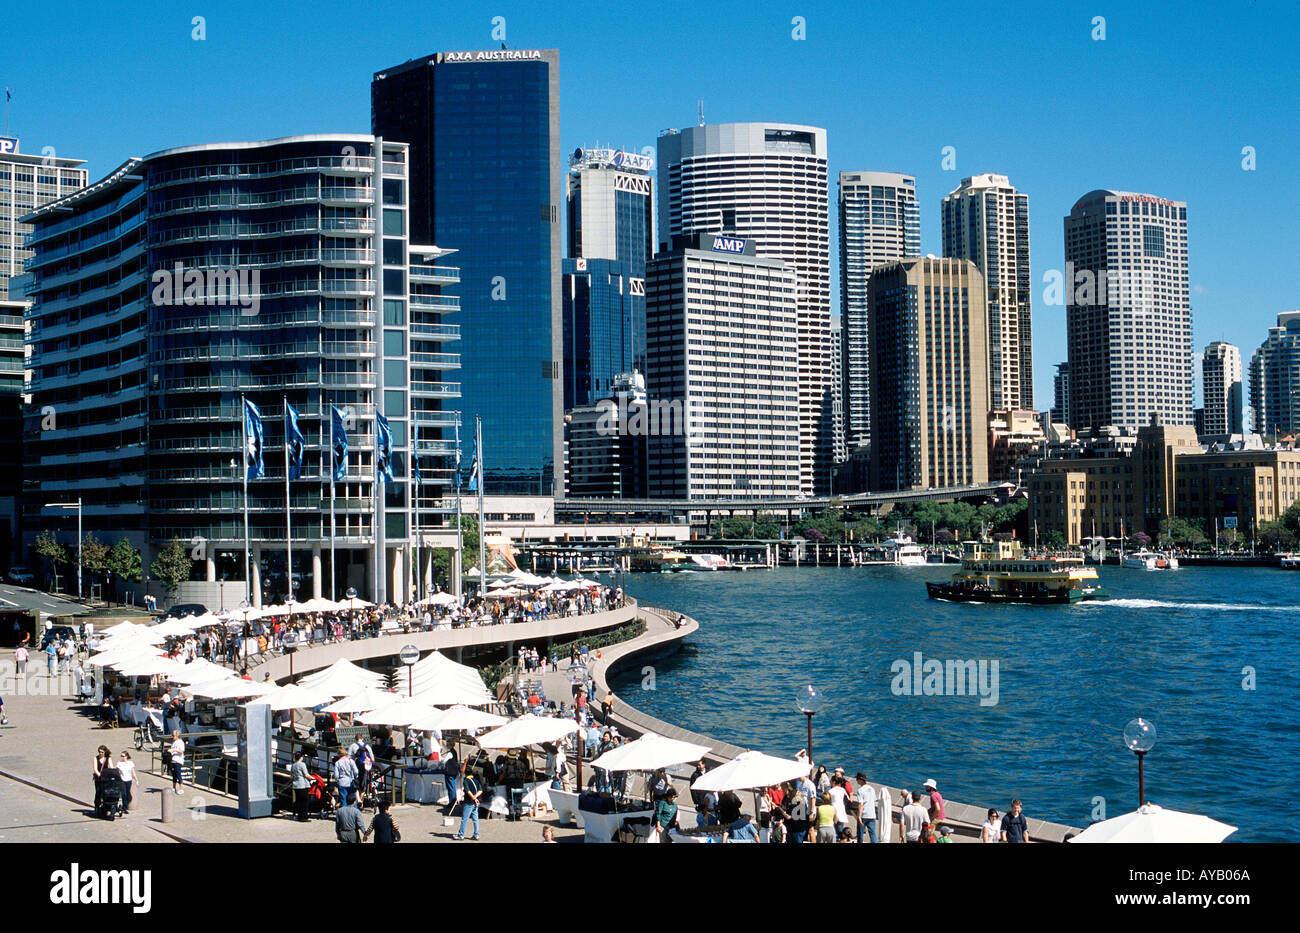 Circular Quay at Sydney Australia on market day Stalls selling decorative and souveniers - Stock Image